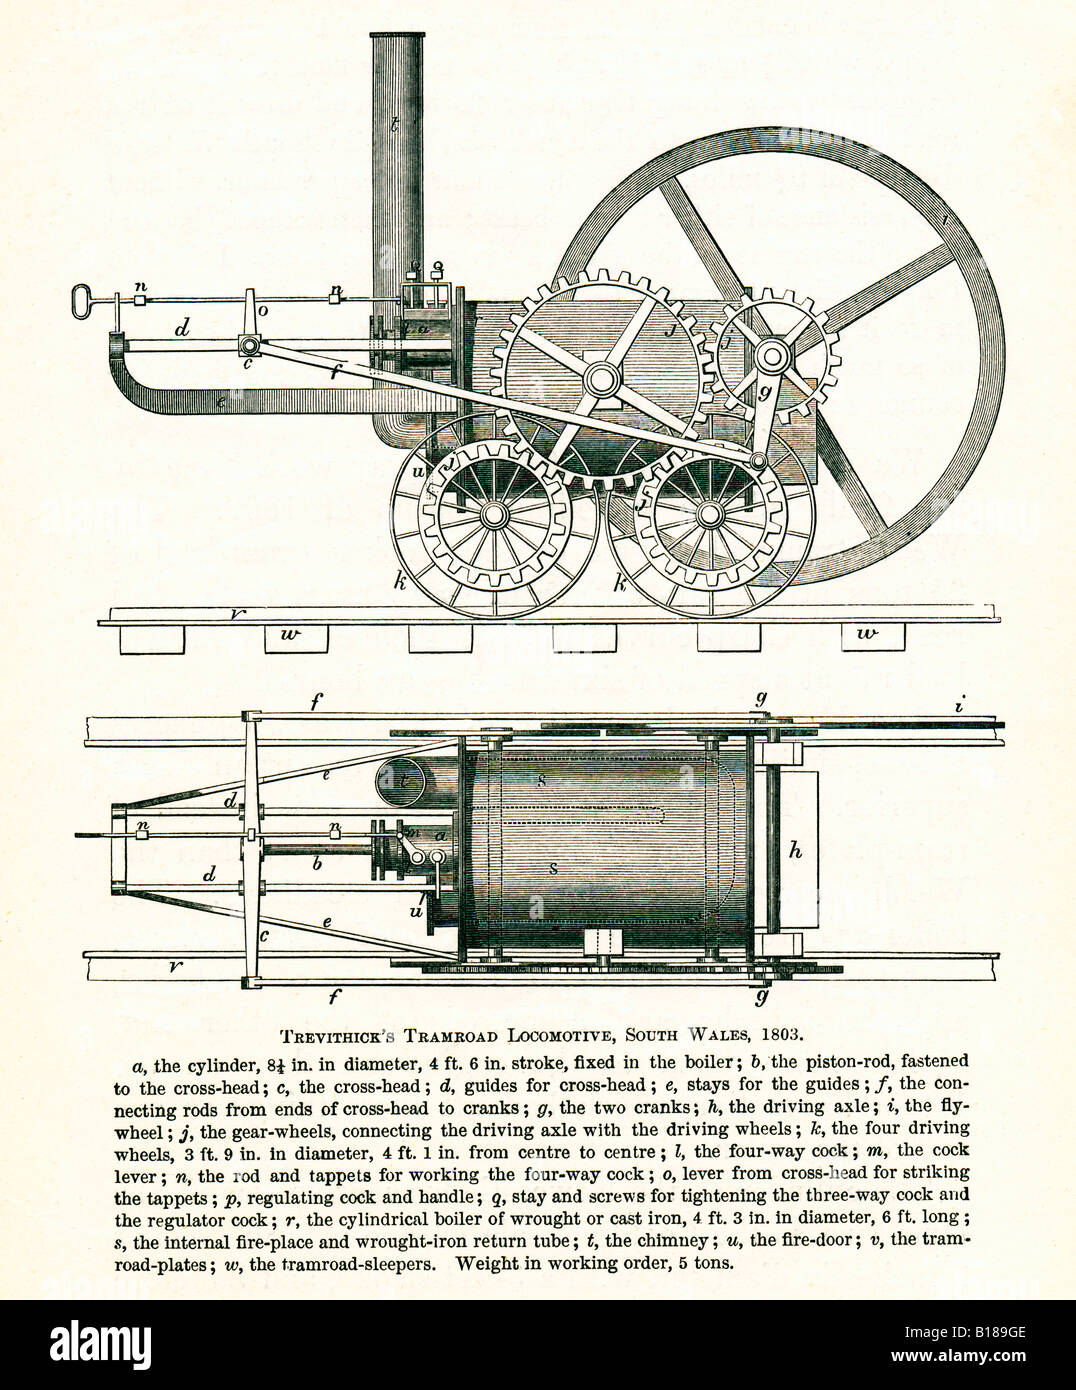 hight resolution of trevithick tramroad locomotive 1803 the first steam engine on tracks run at the penydarran ironworks merthyr tydfil